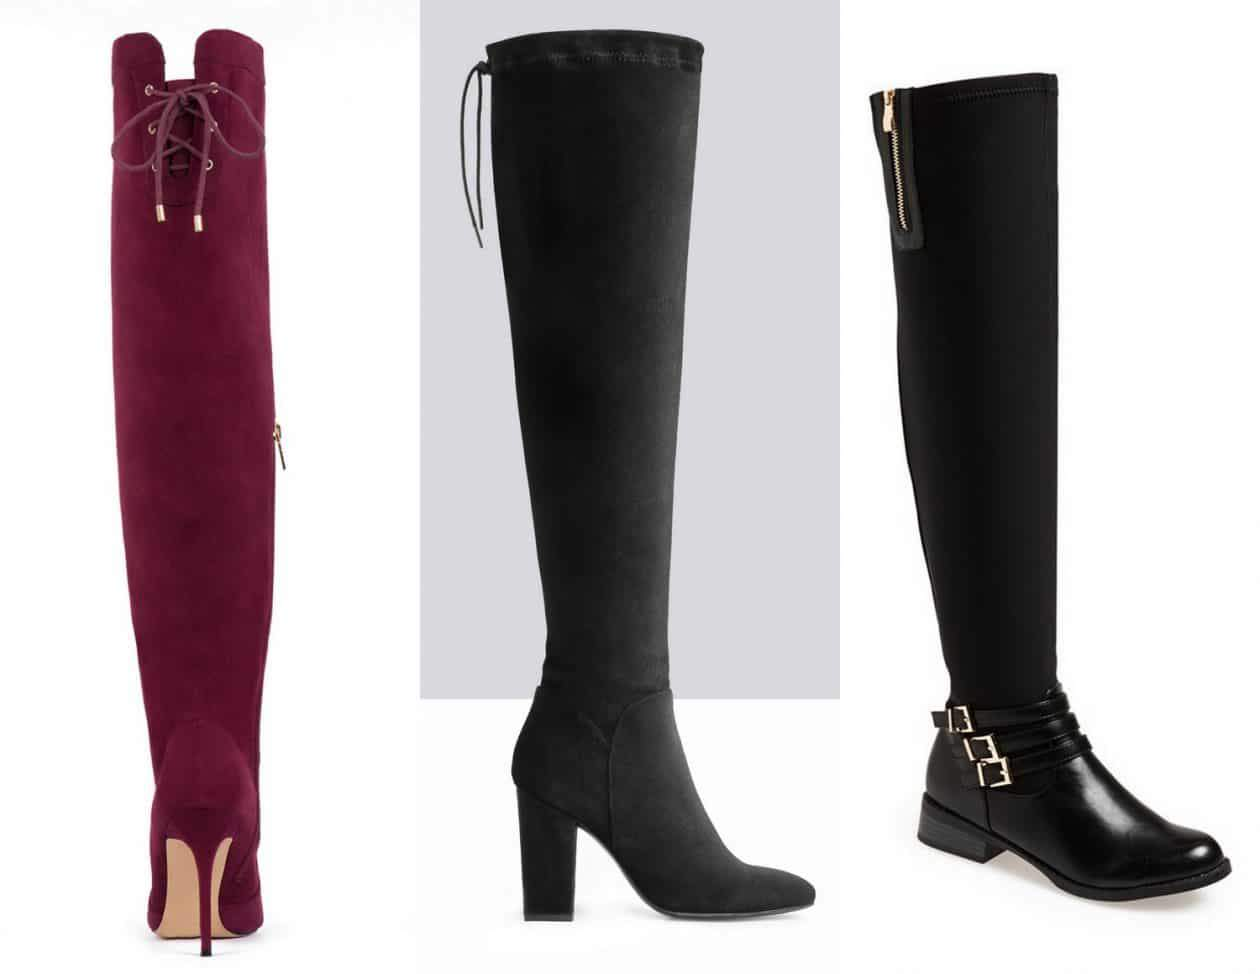 Boots for the Fall and who caters to us all